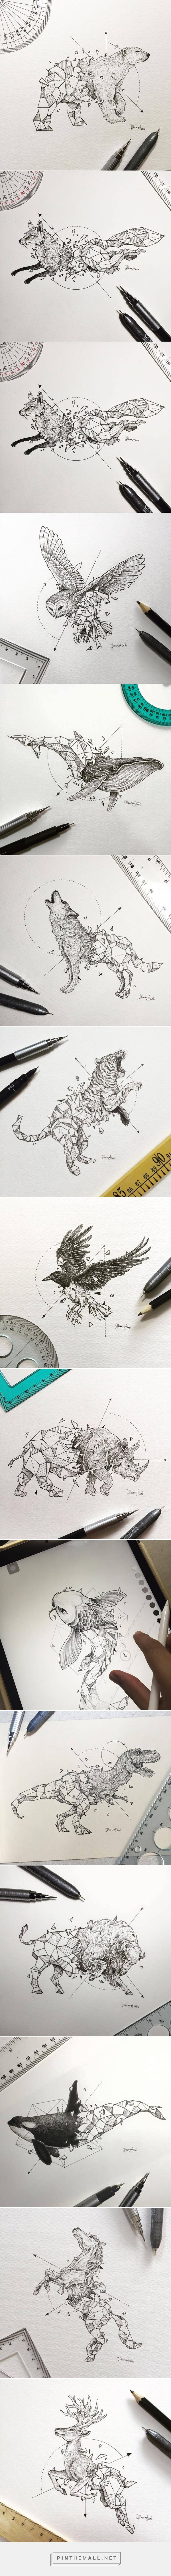 Lovely Half-Geometrical Drawings of Wild Animals – Fubiz Media... - a grouped images picture - Pin Them All